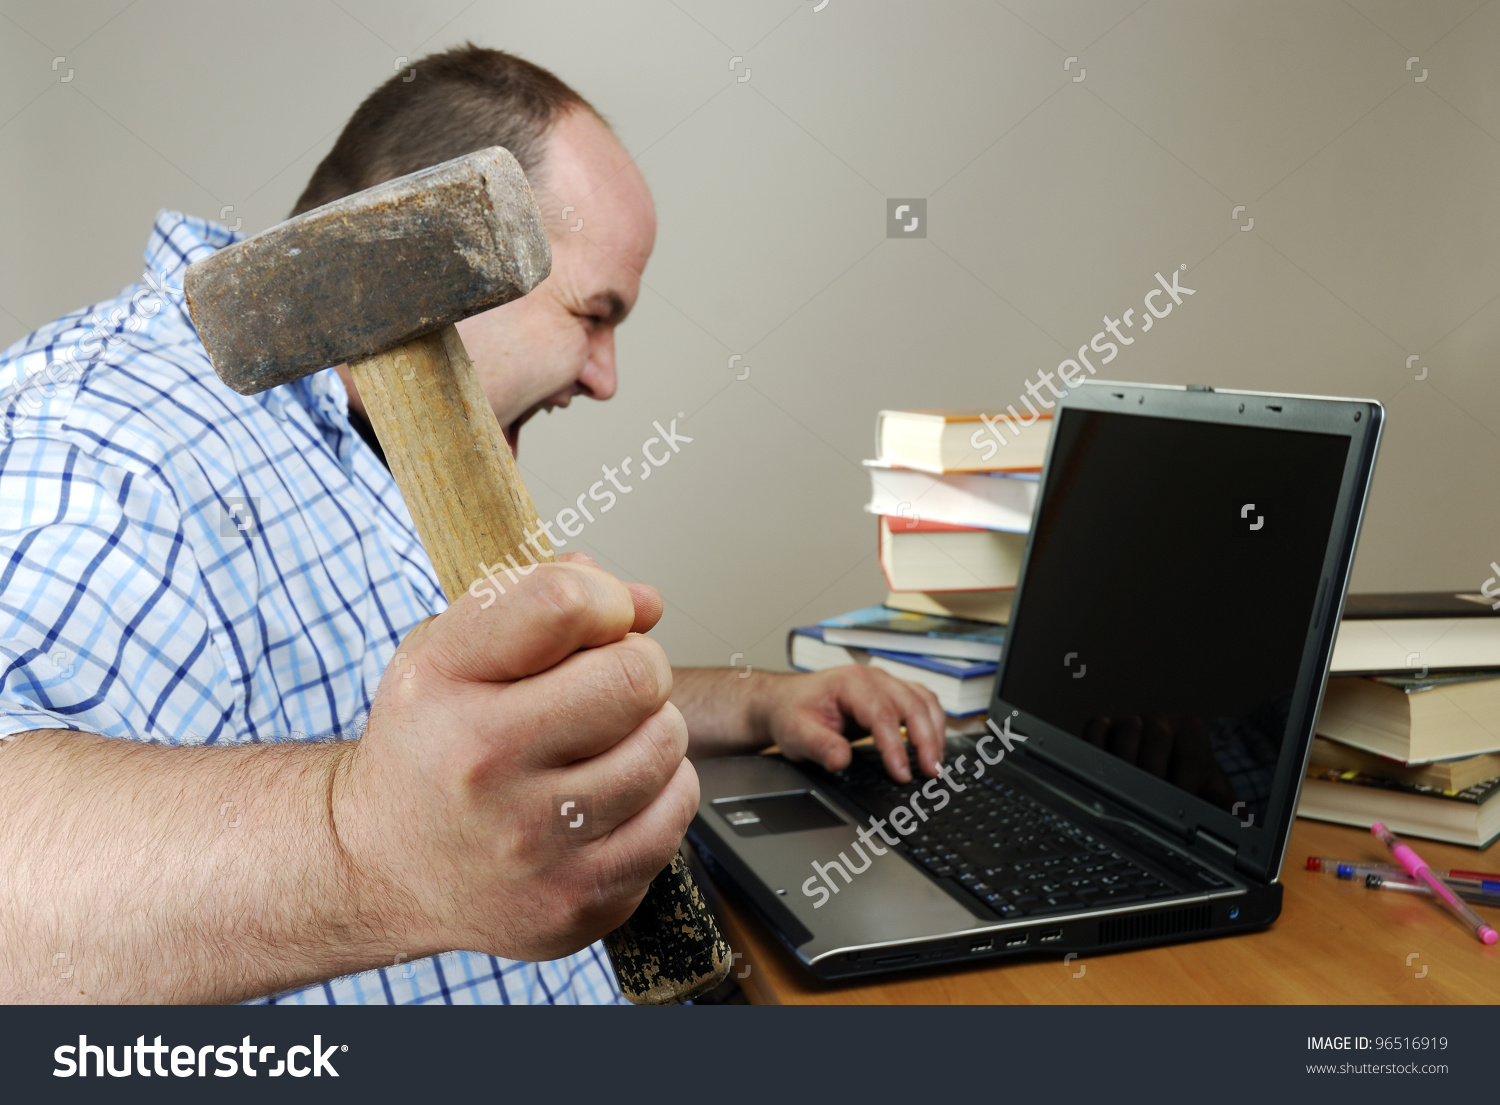 stock-photo-angry-man-is-about-to-smash-his-computer-96516919